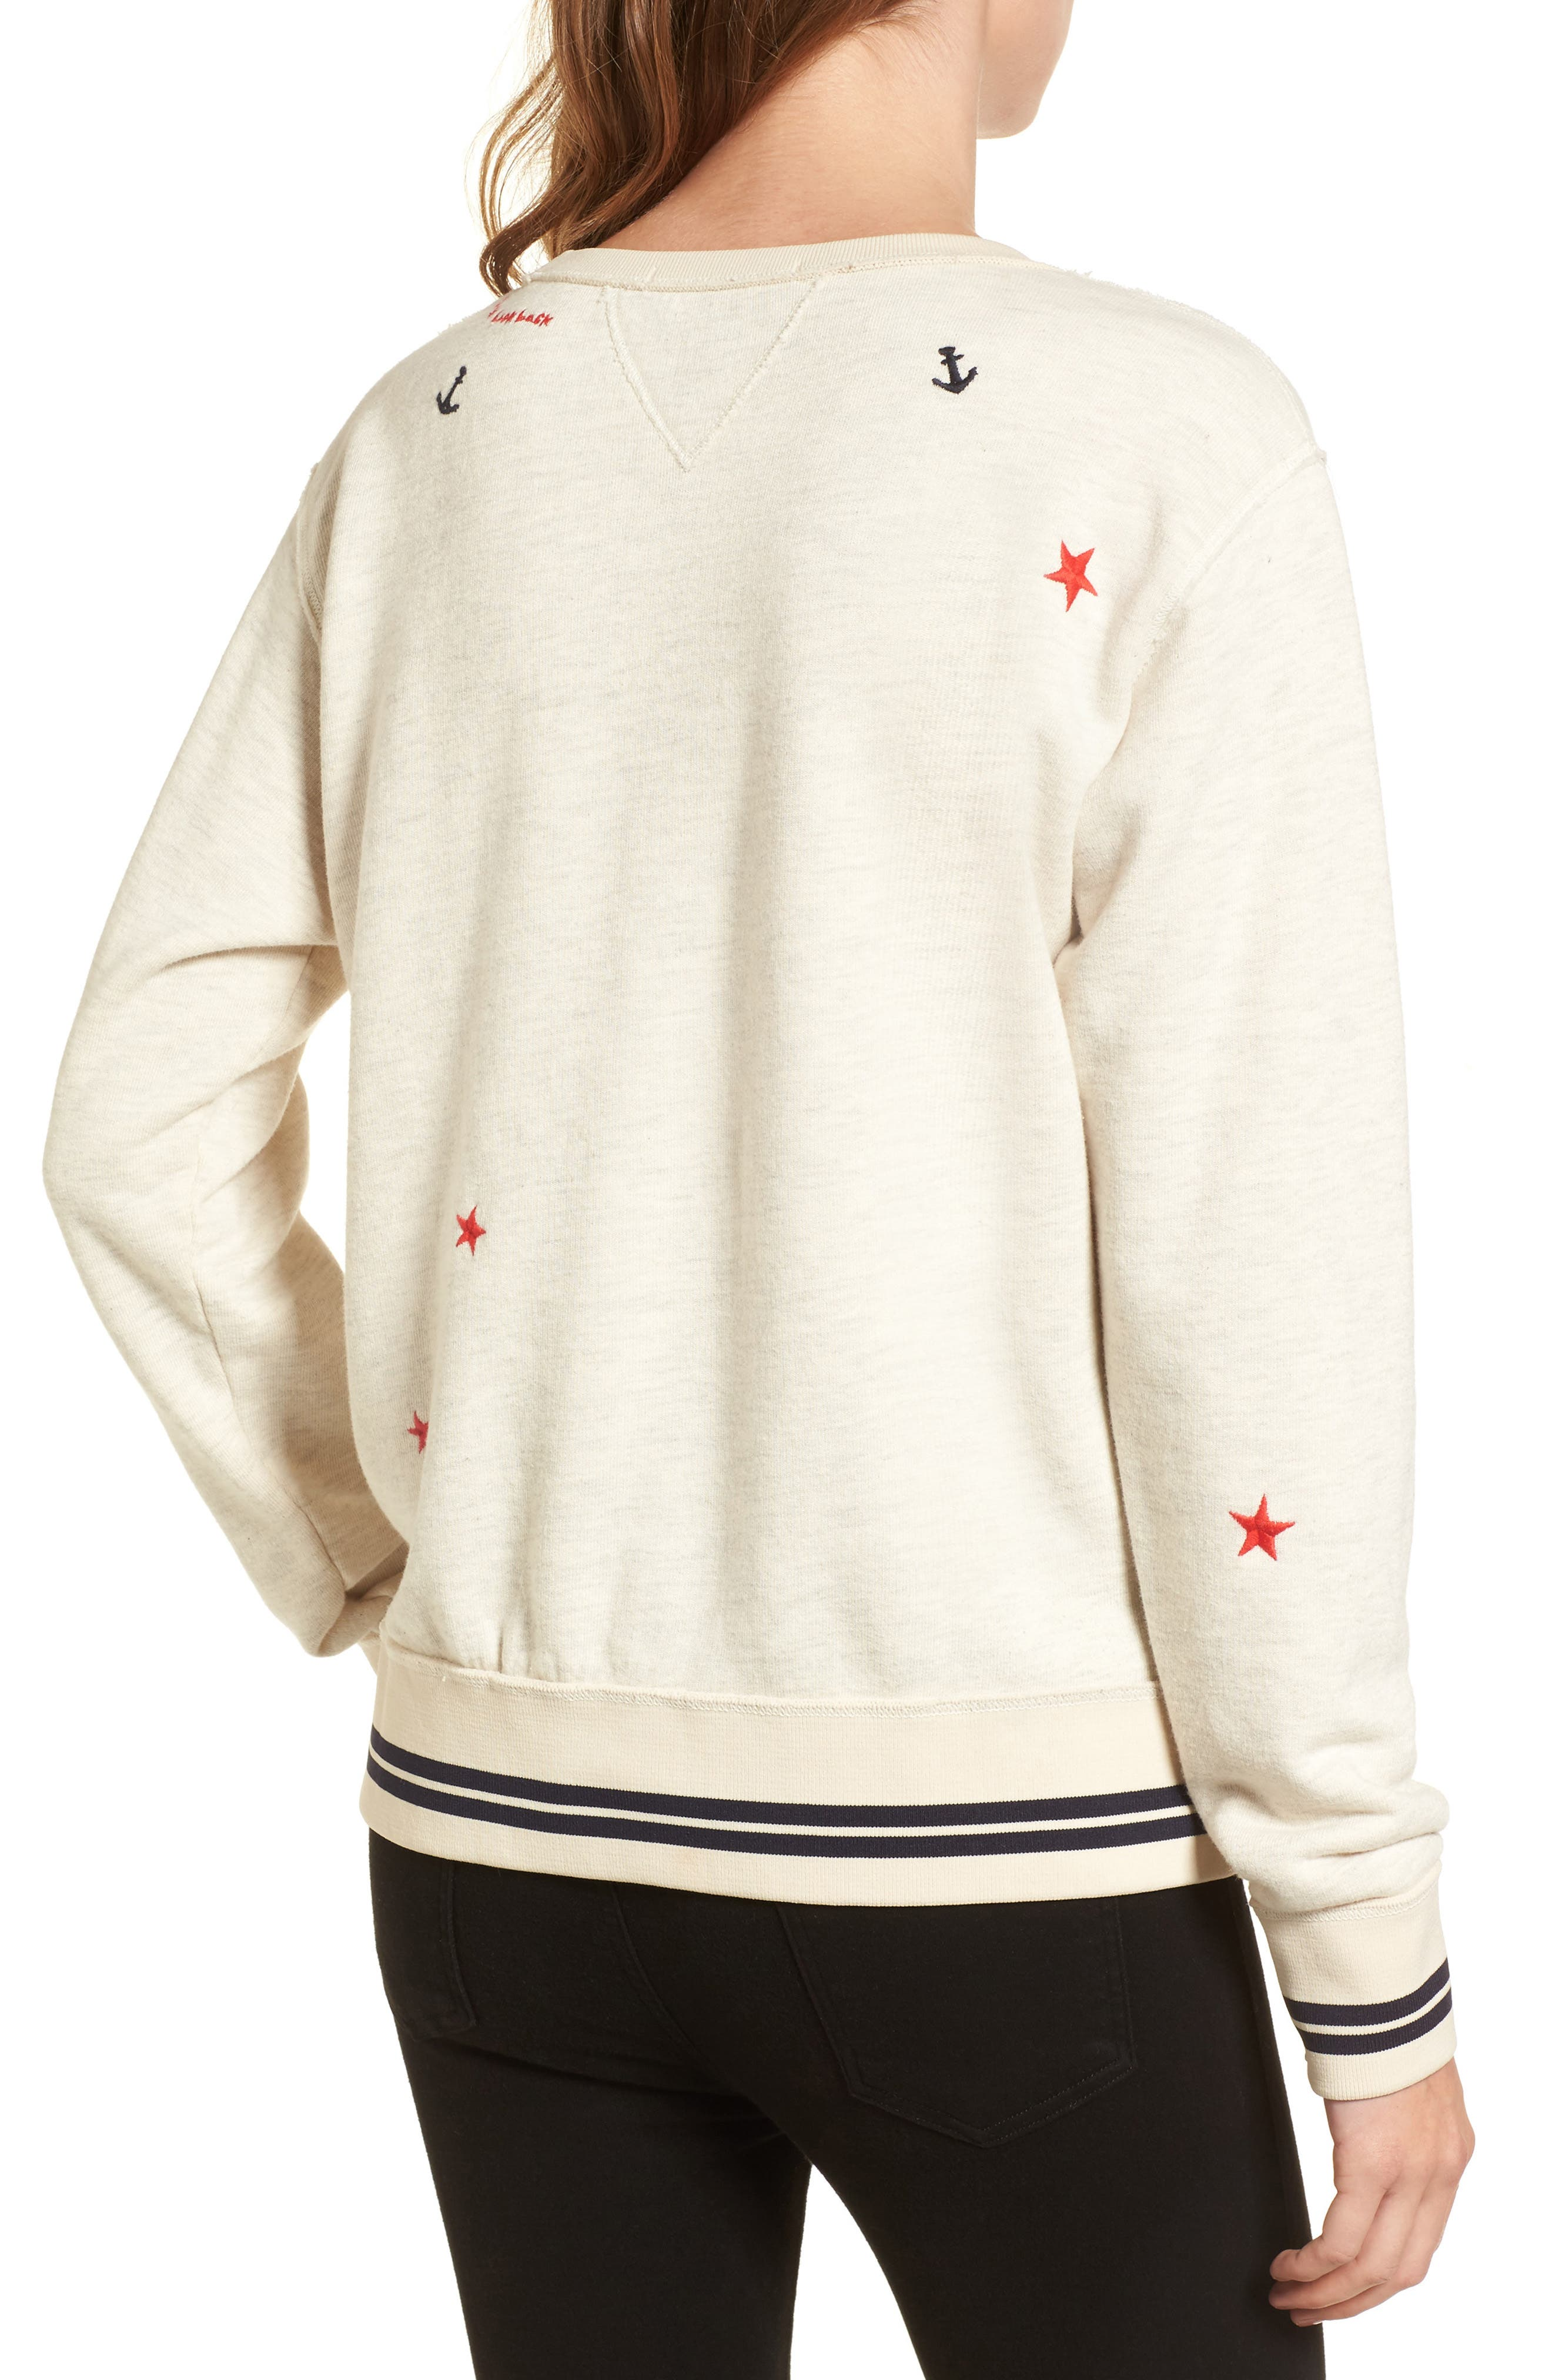 Nautical Sweatshirt,                             Alternate thumbnail 2, color,                             900